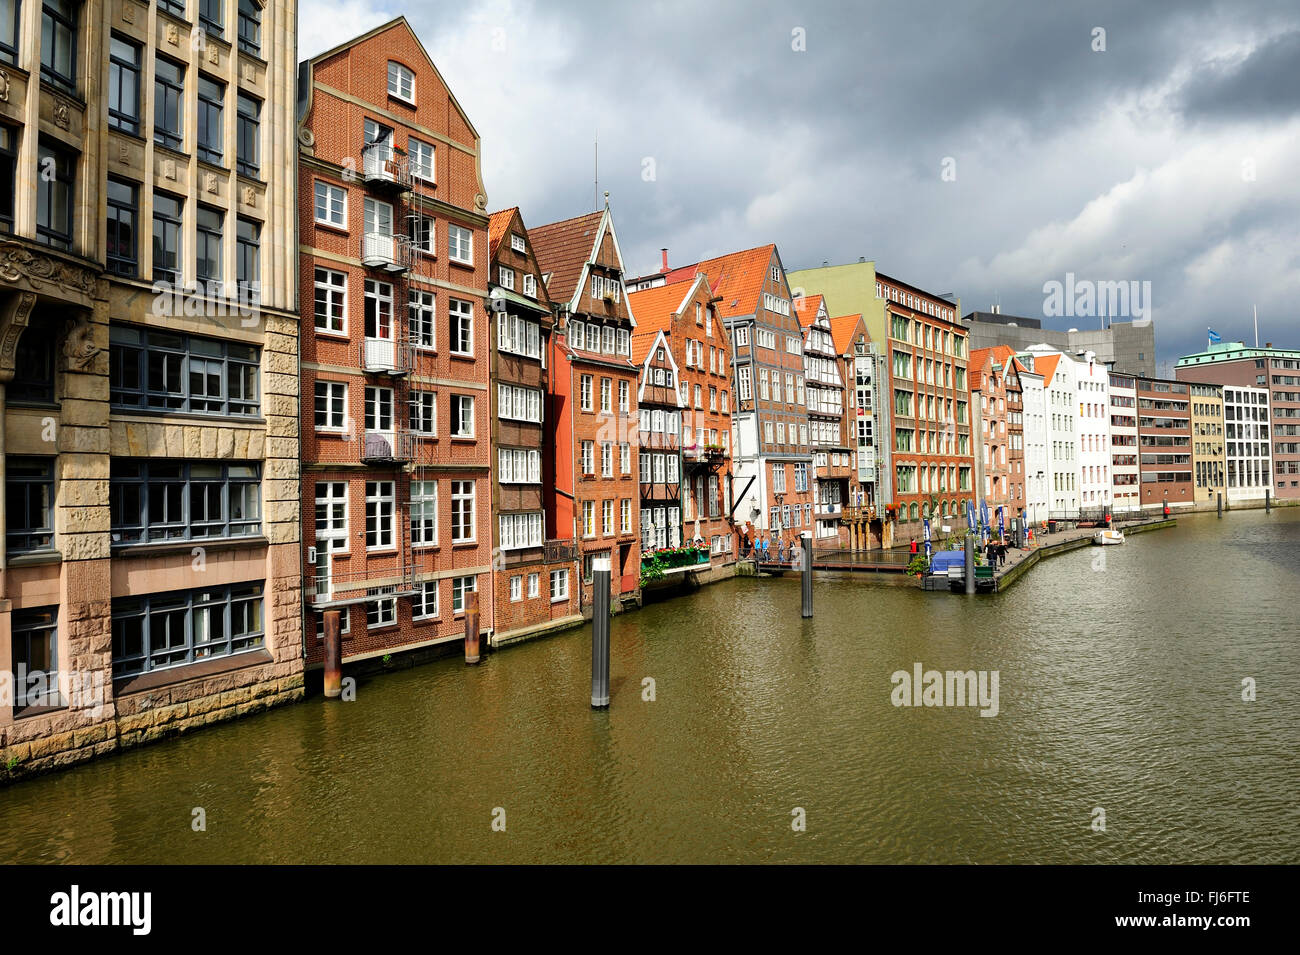 historic timber-framed houses at Nikolaifleet, Altstadt district, Hamburg, Germany - Stock Image